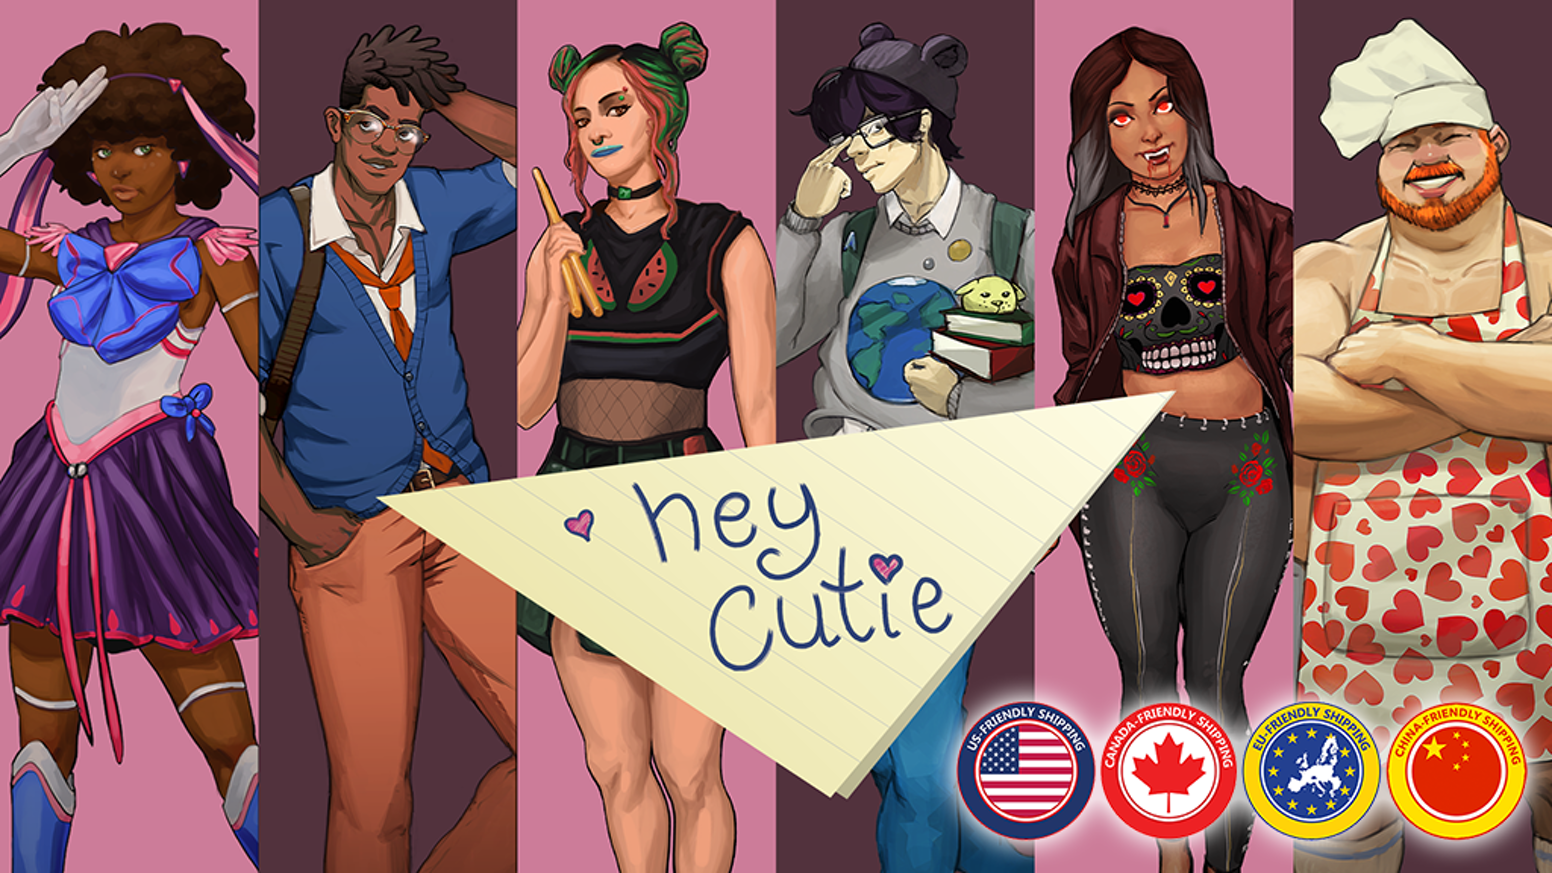 Crush on vampires, woo sexy cyborgs, and sabotage your opponents' love lives in this quirky card game.